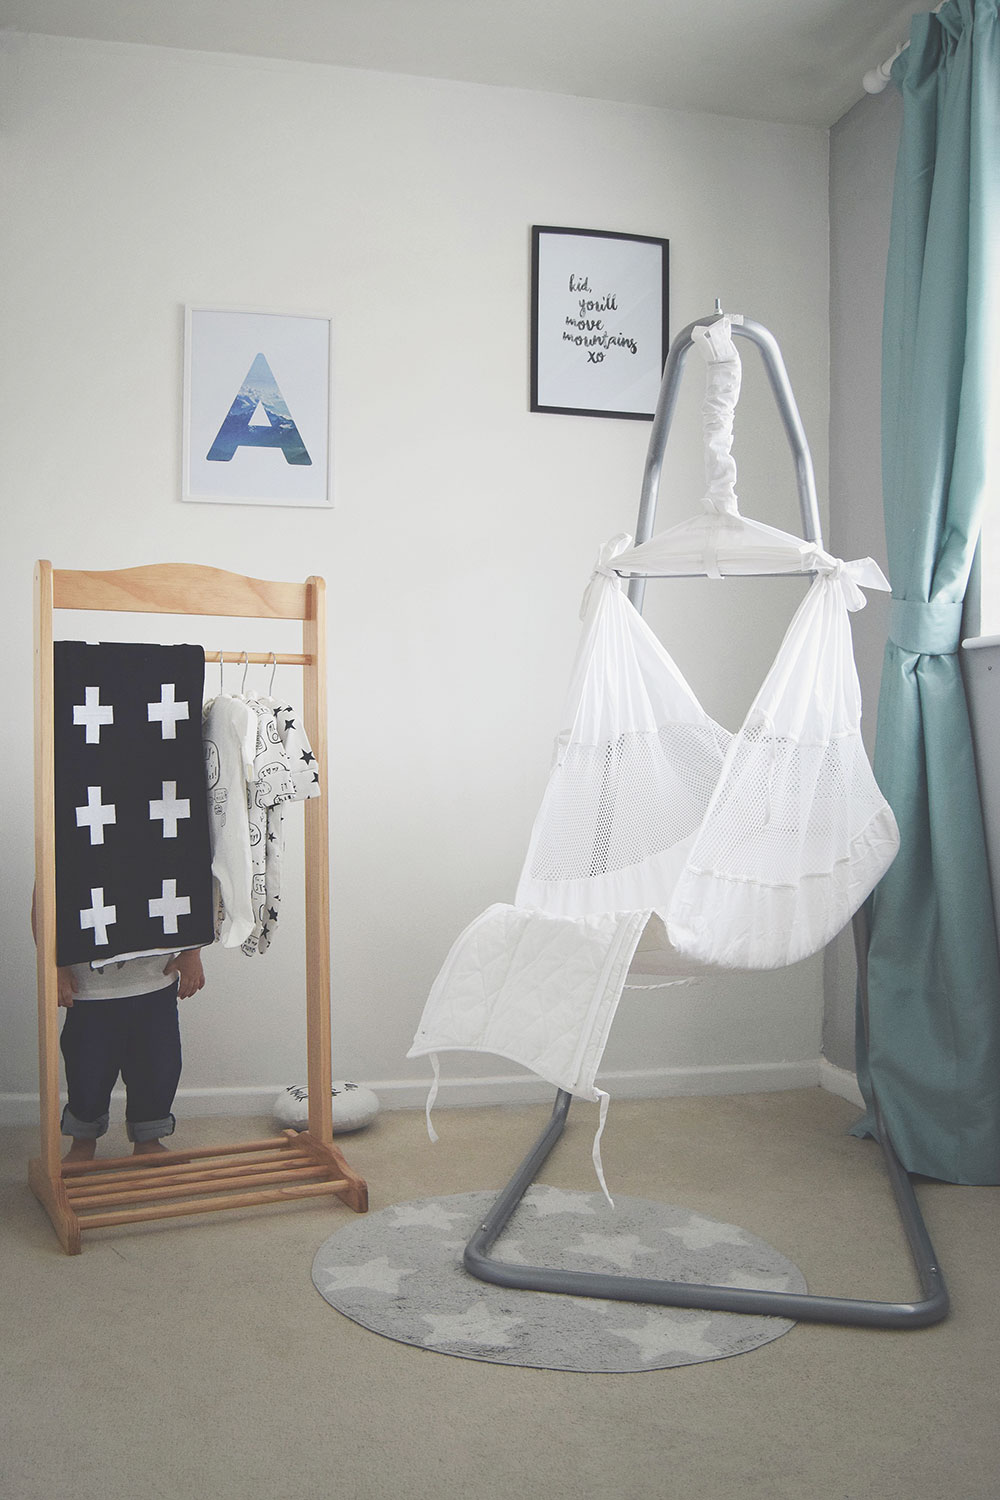 Baby crib hammock - Poco Baby Hammock Our First Impressions Alternative To Baby Crib For Night And